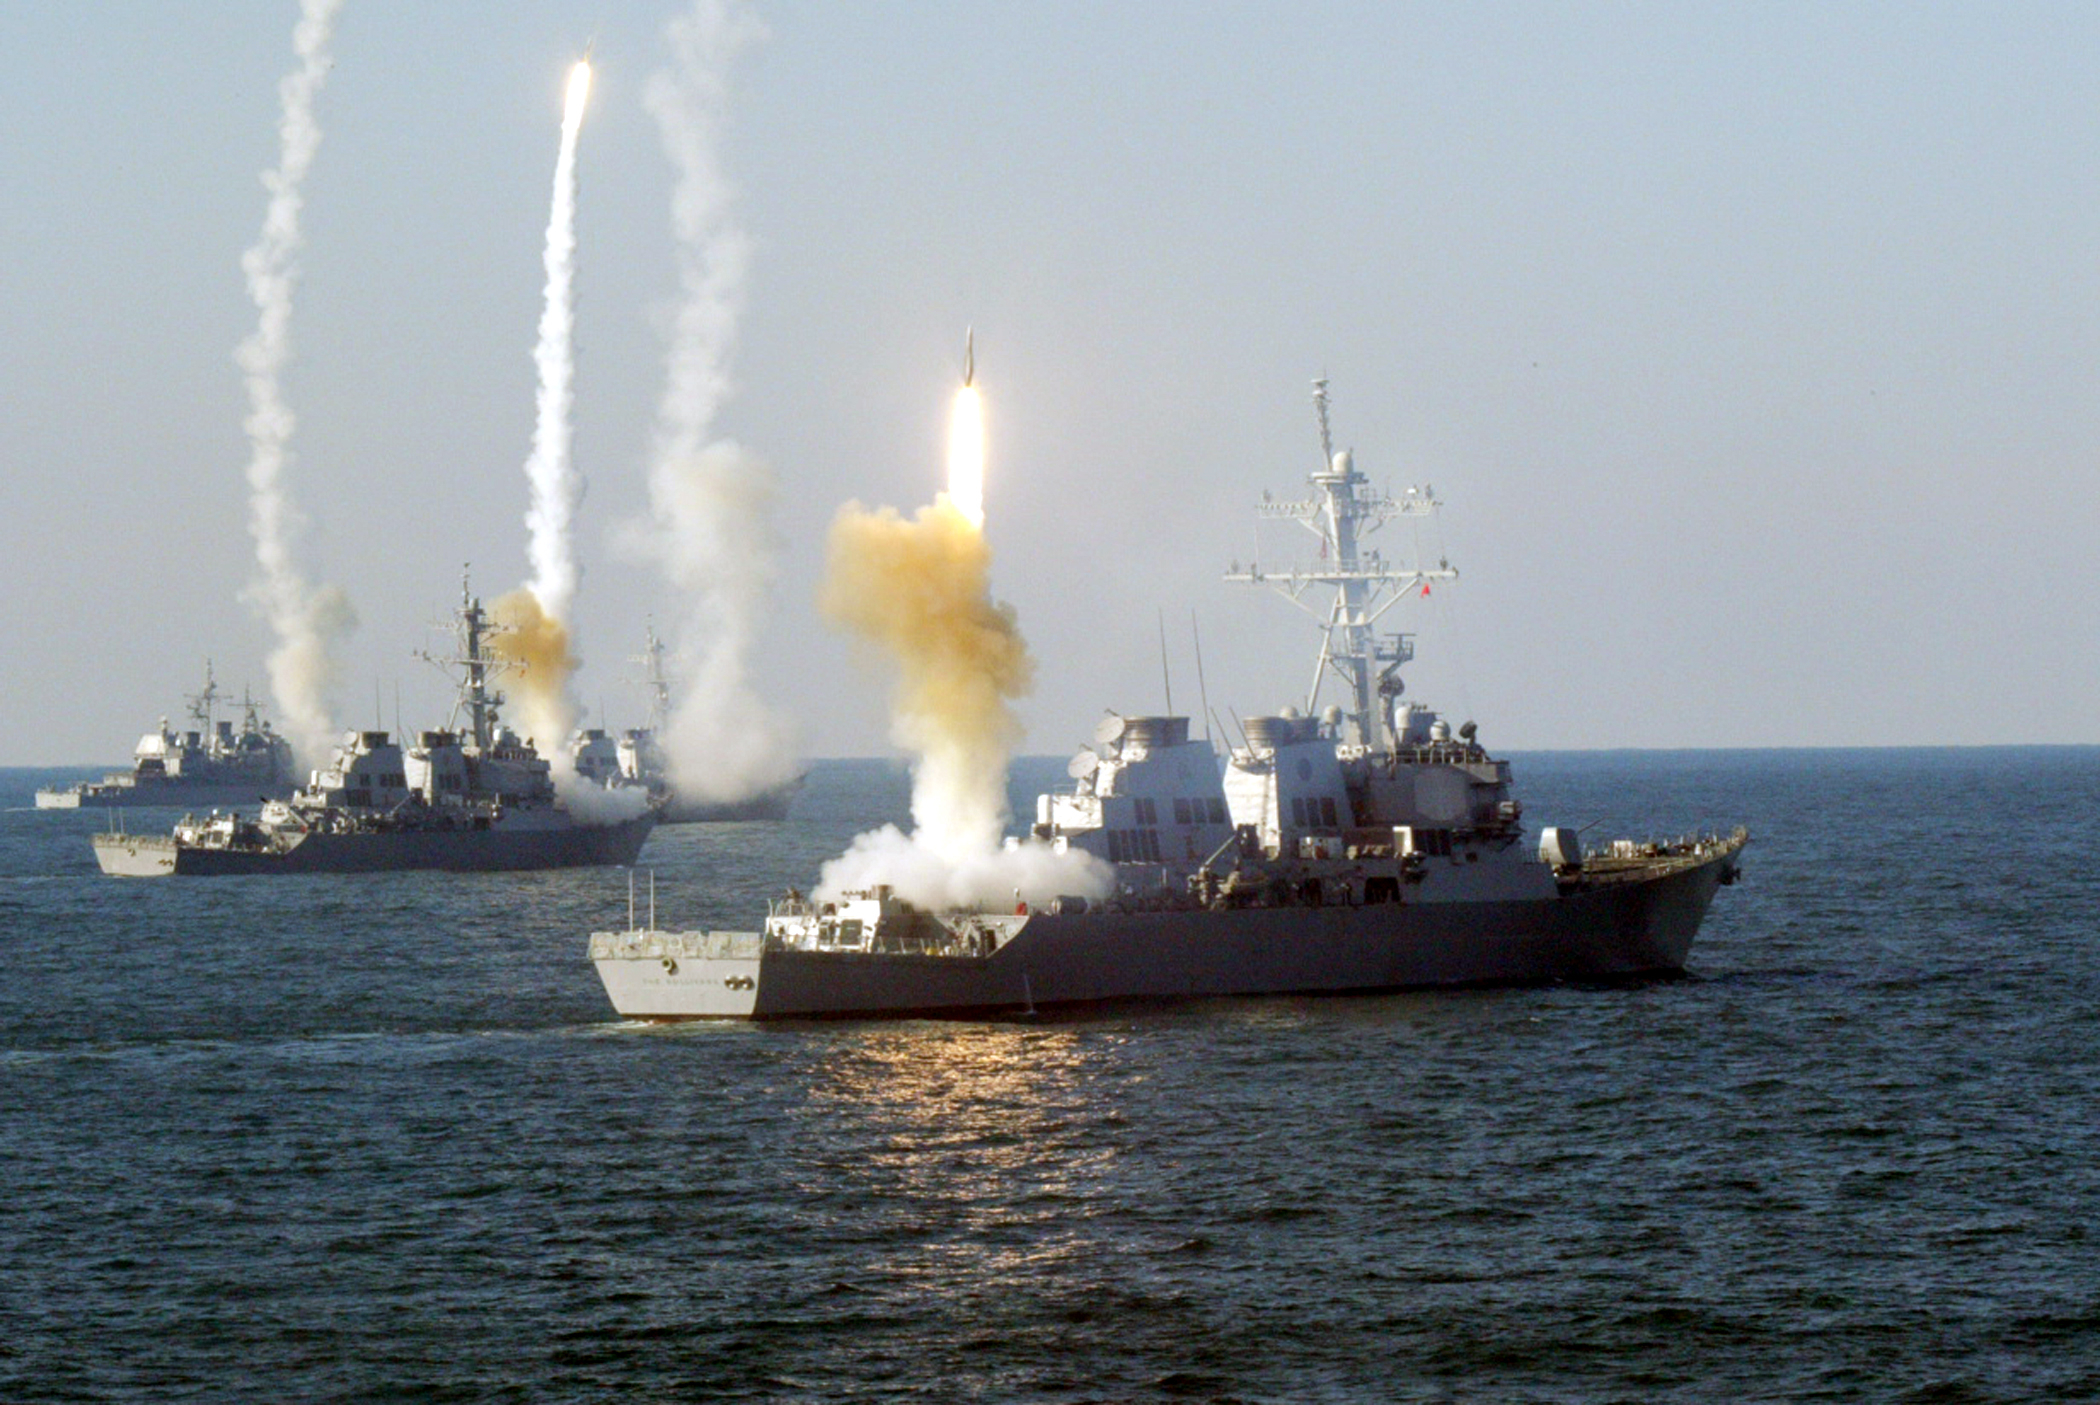 Left to right, the guided missile cruiser USS Vicksburg (CG 69), and the guided missile destroyers USS Roosevelt (DDG 80), USS Carney (DDG 64) and USS The Sullivans (DDG 68) launch a coordinated volley of missiles in 2003. US Navy Photo